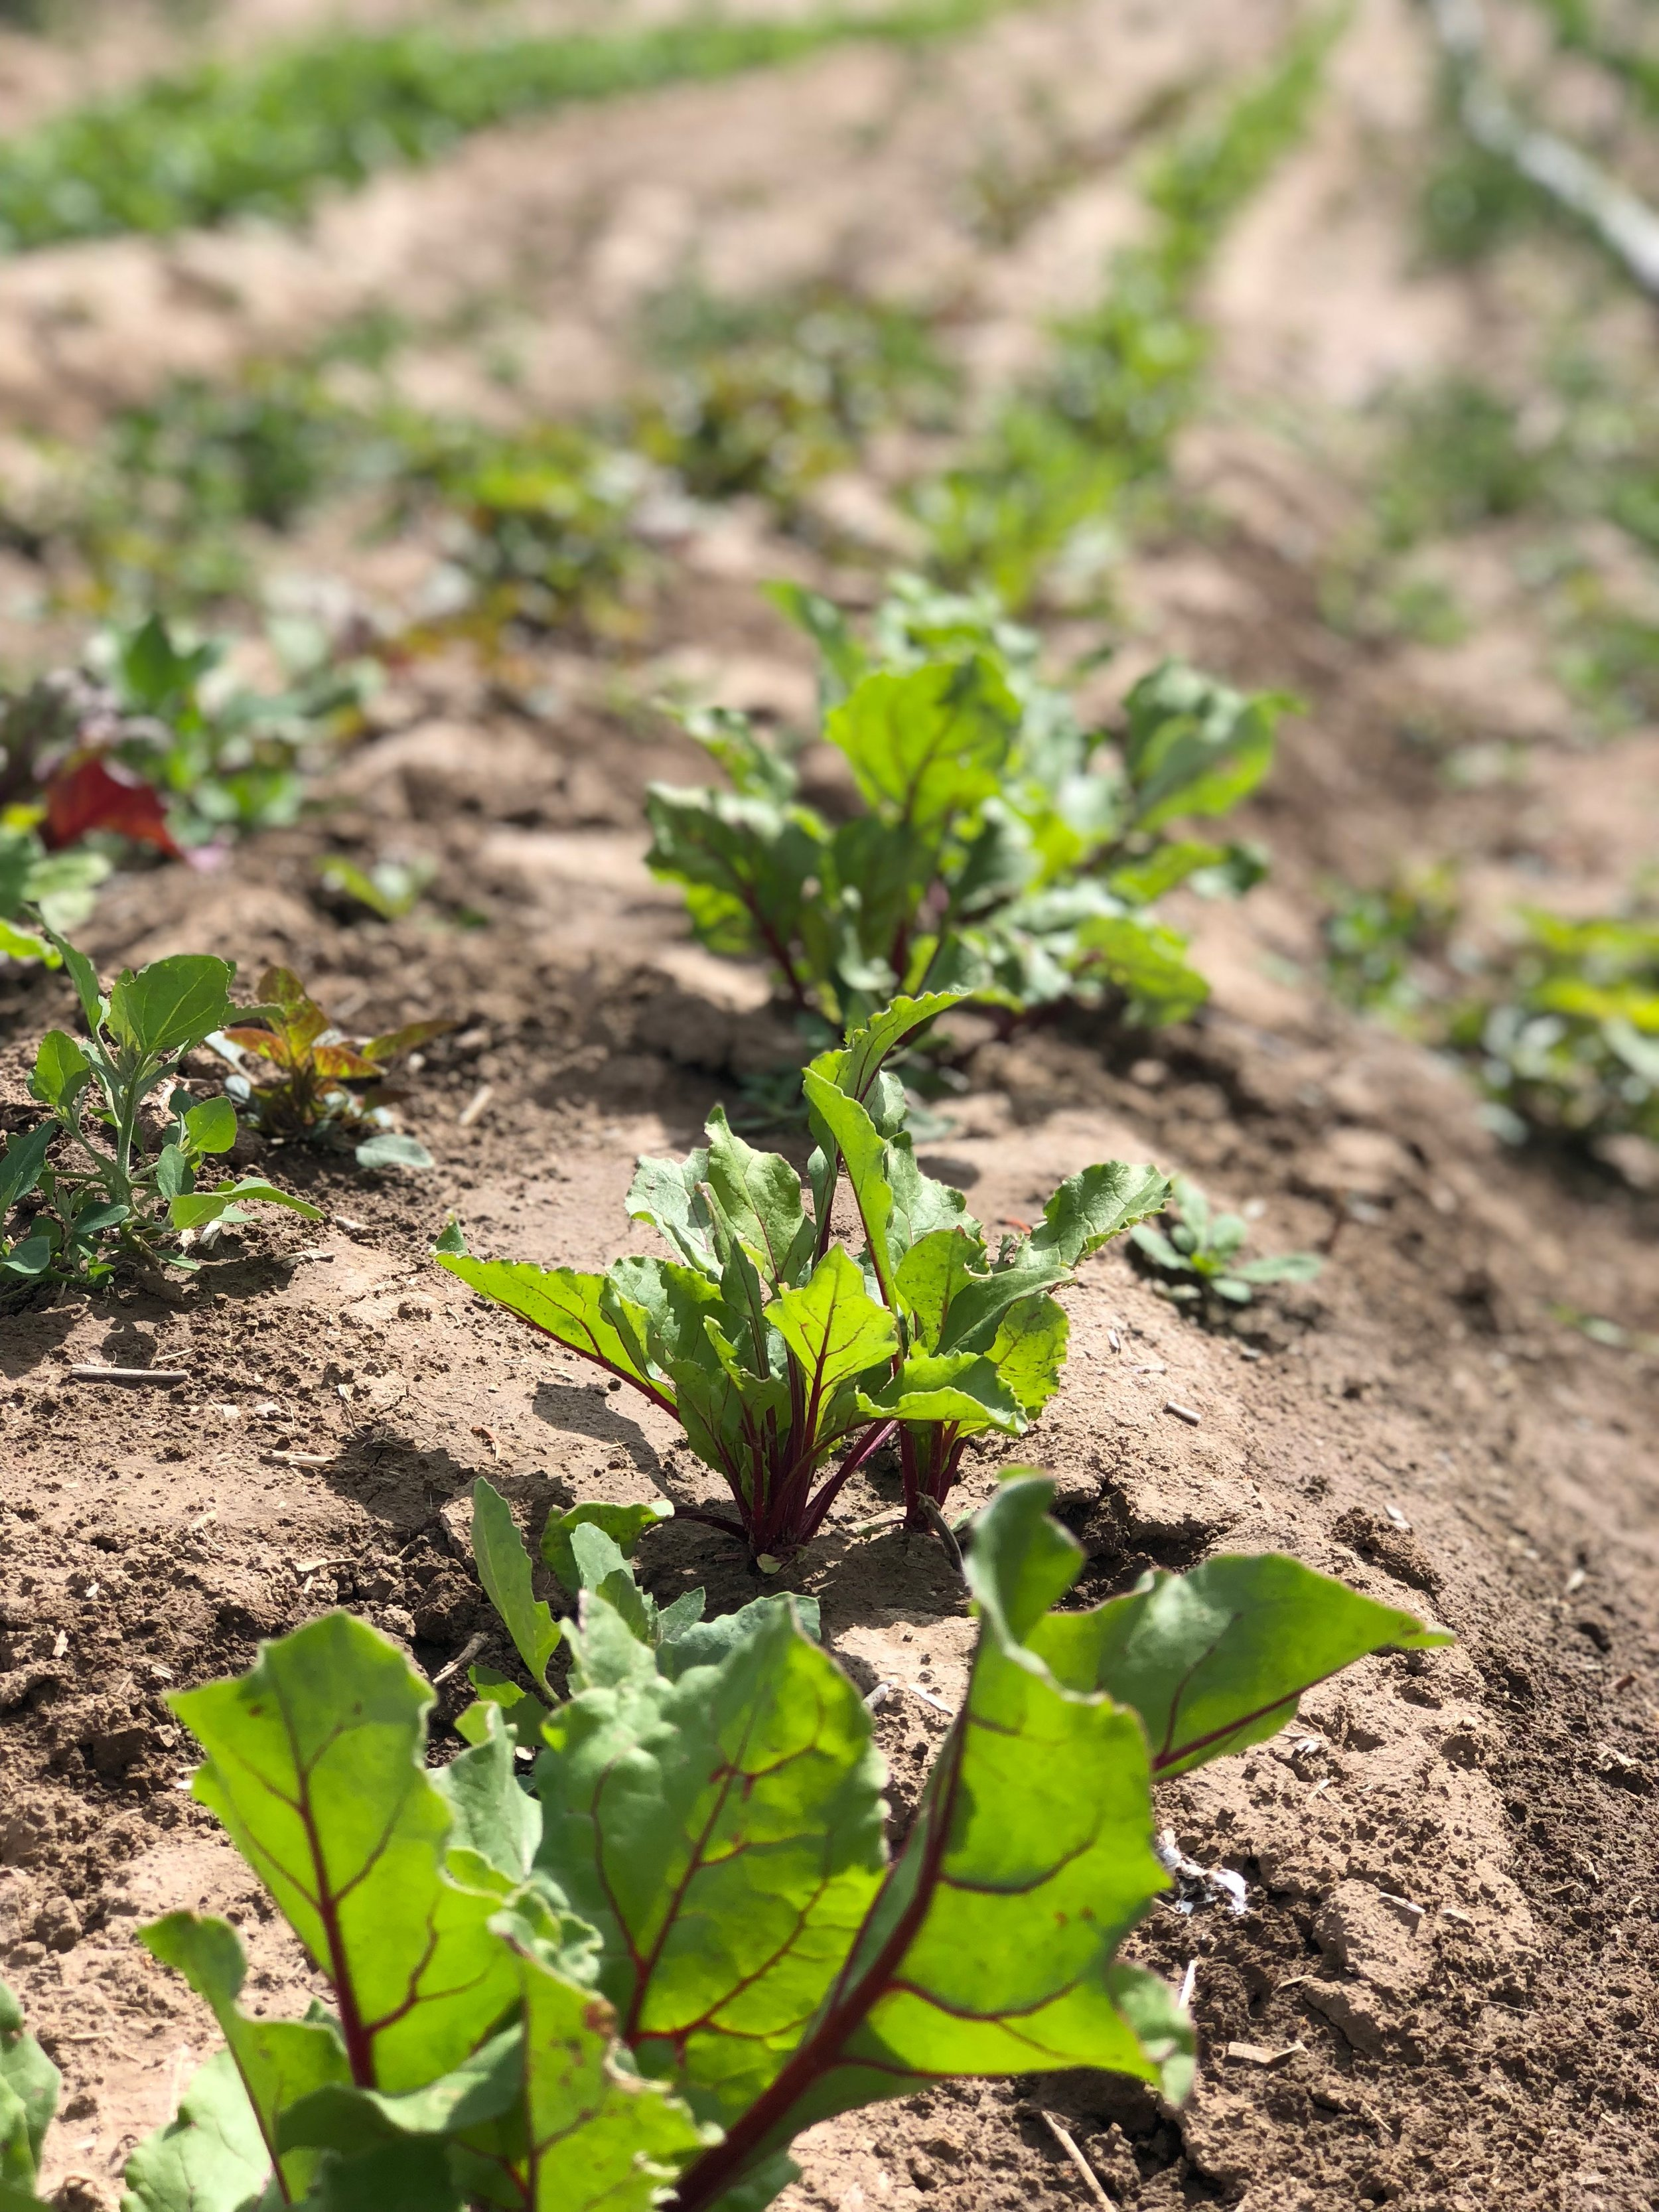 If you loved the beets from last year... just wait for MORE this year.